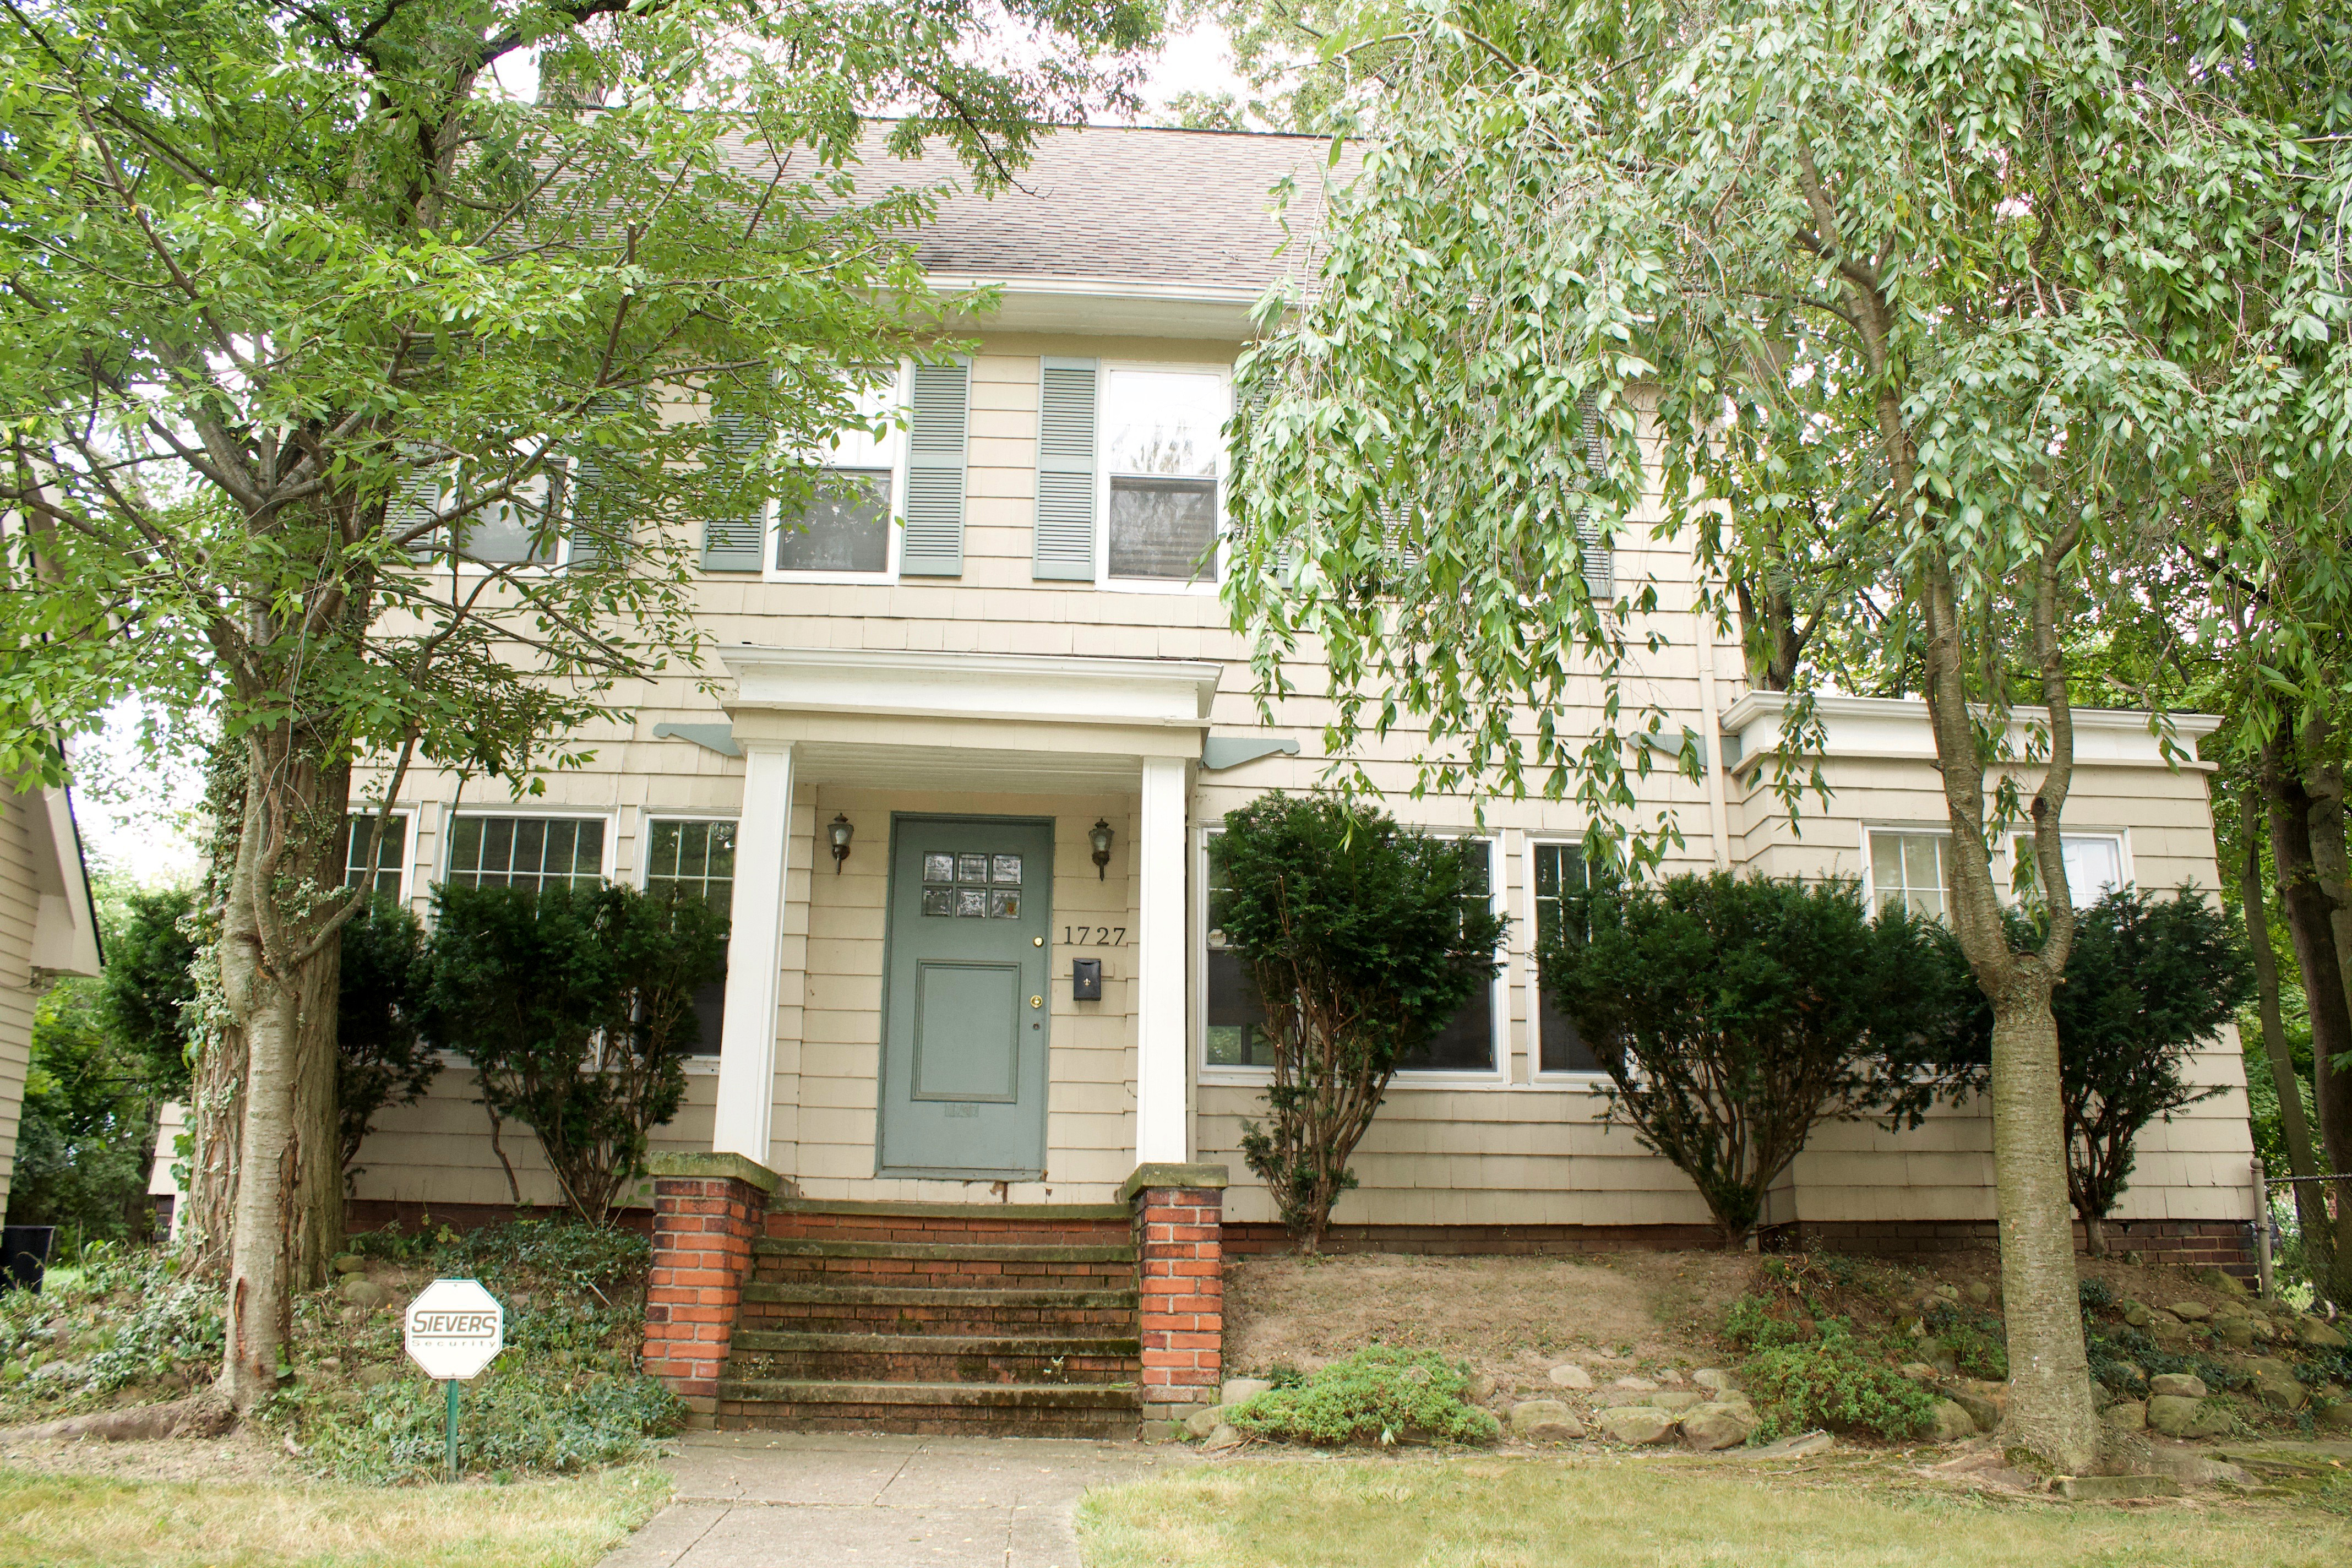 Cleveland Heights Rental Home – Cumberland Road